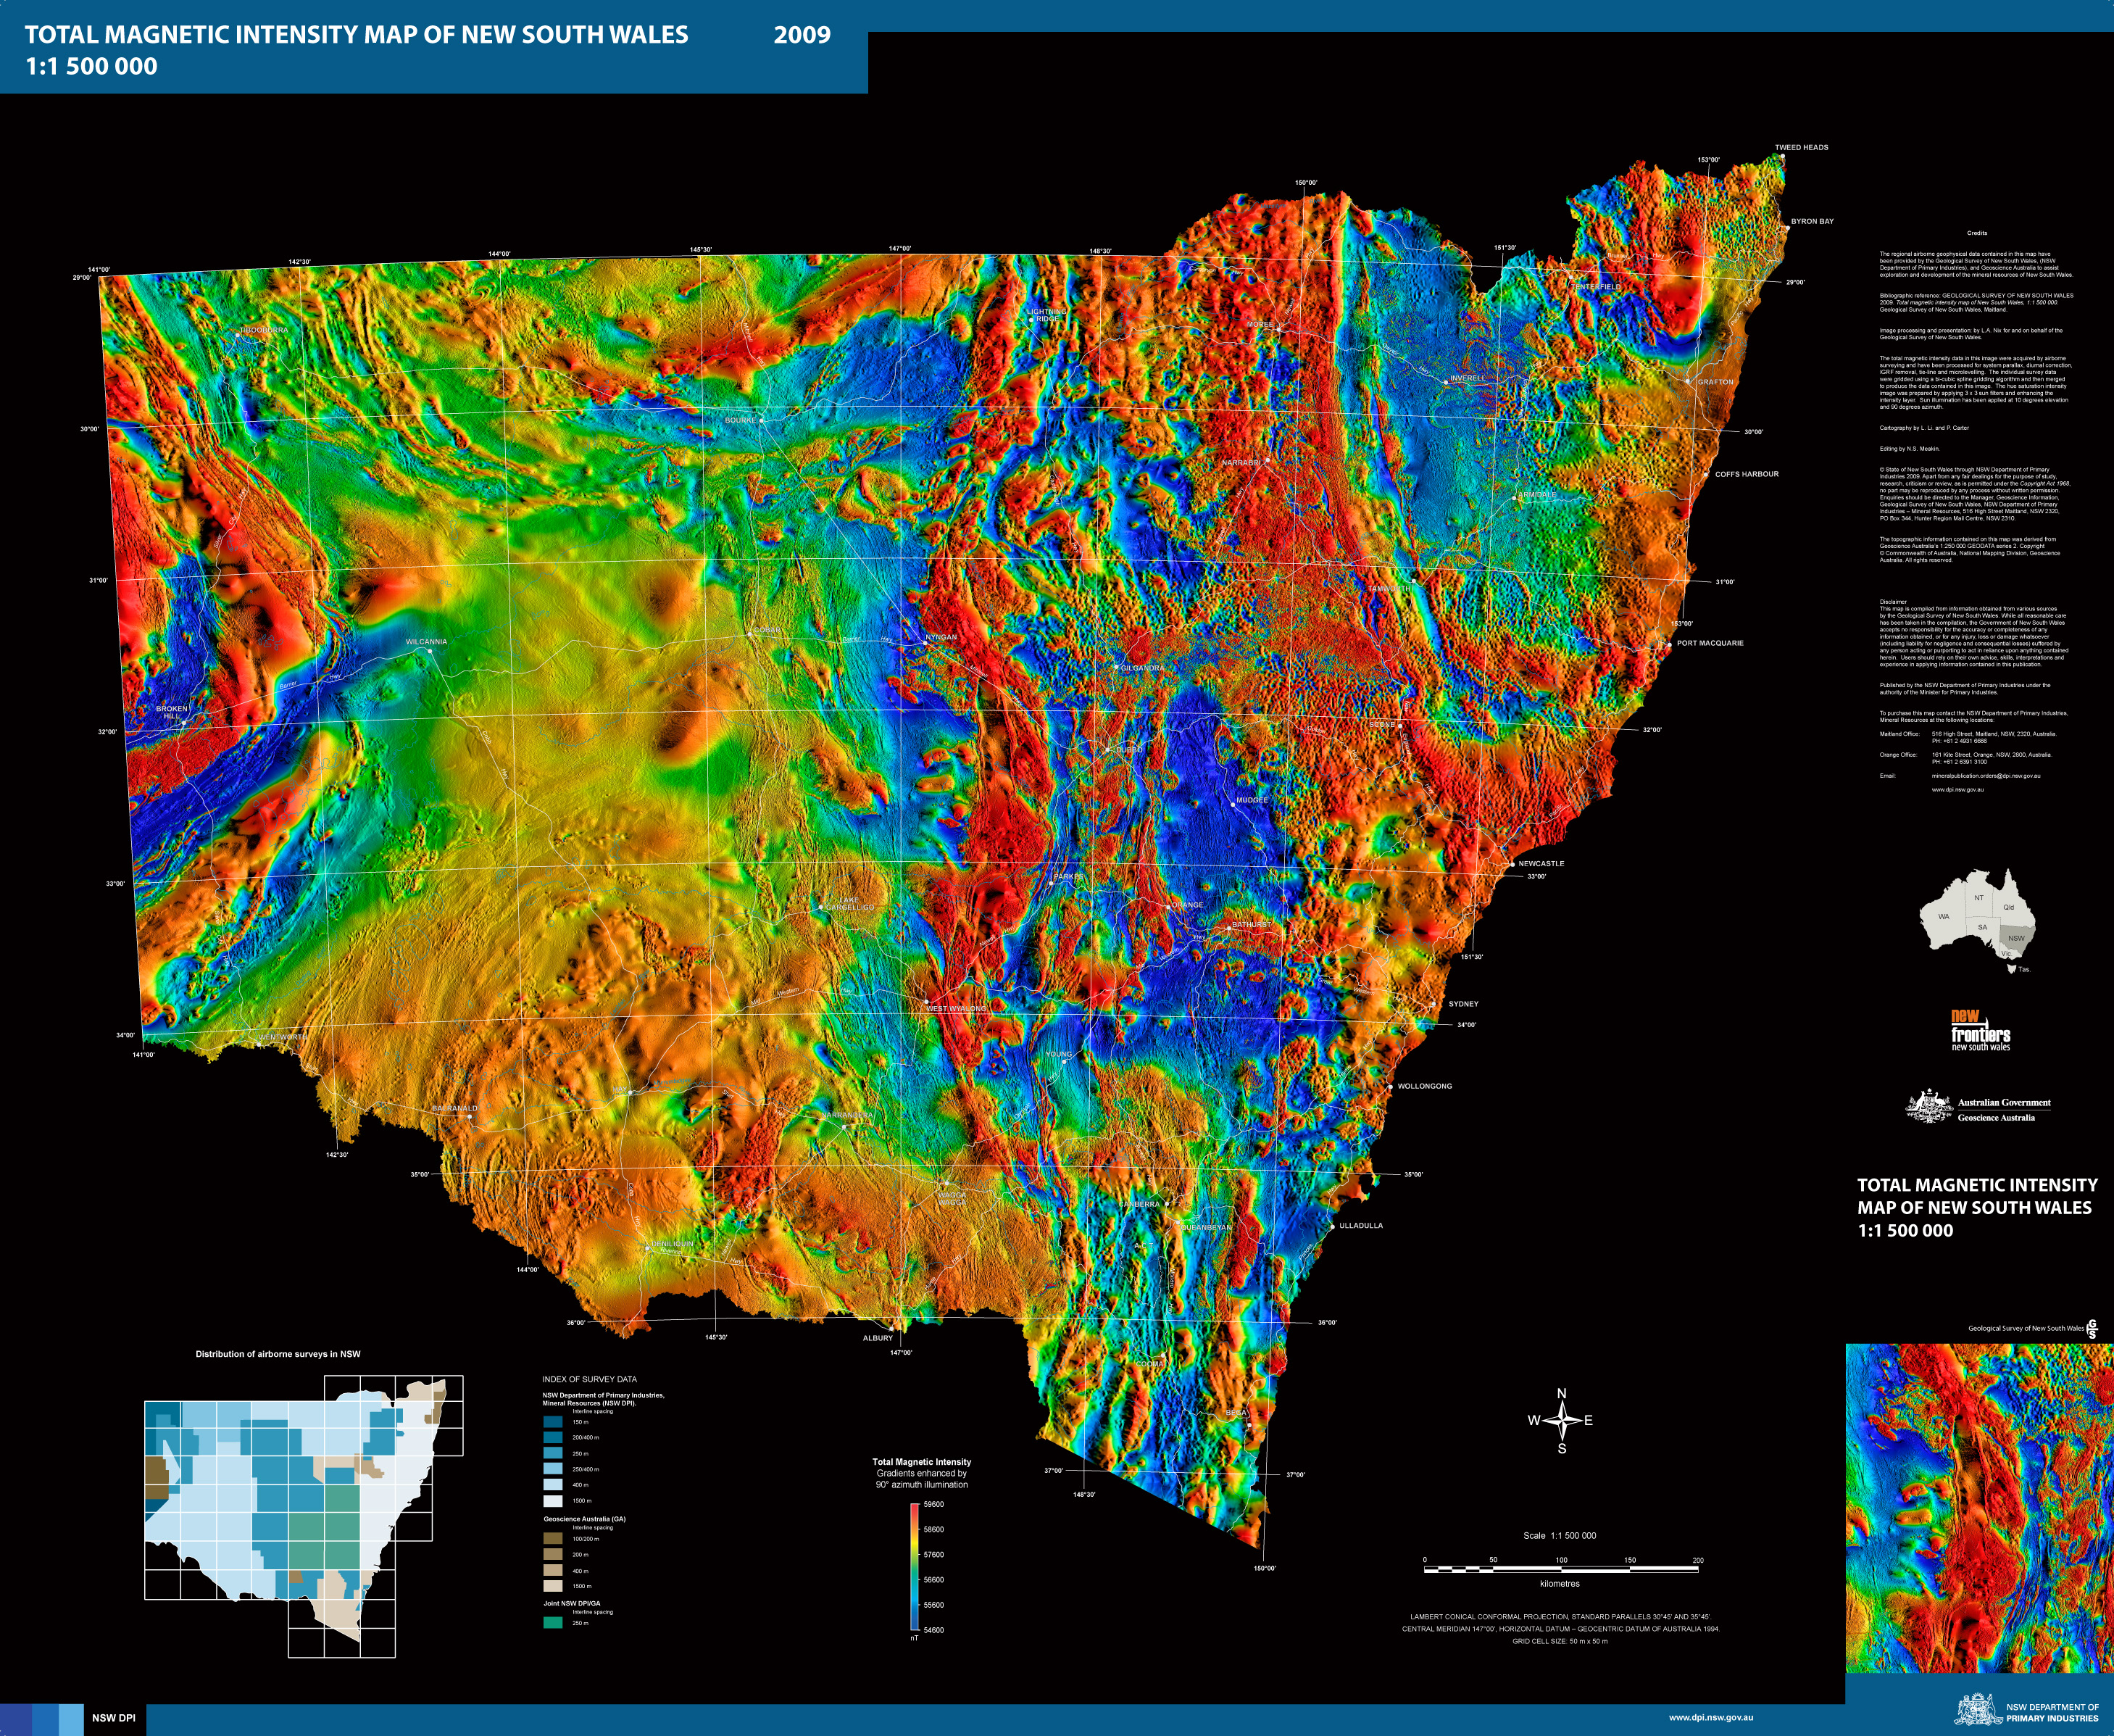 Total magnetic intensity map of nsw nsw resources and geoscience scanned map 38 mb gumiabroncs Choice Image